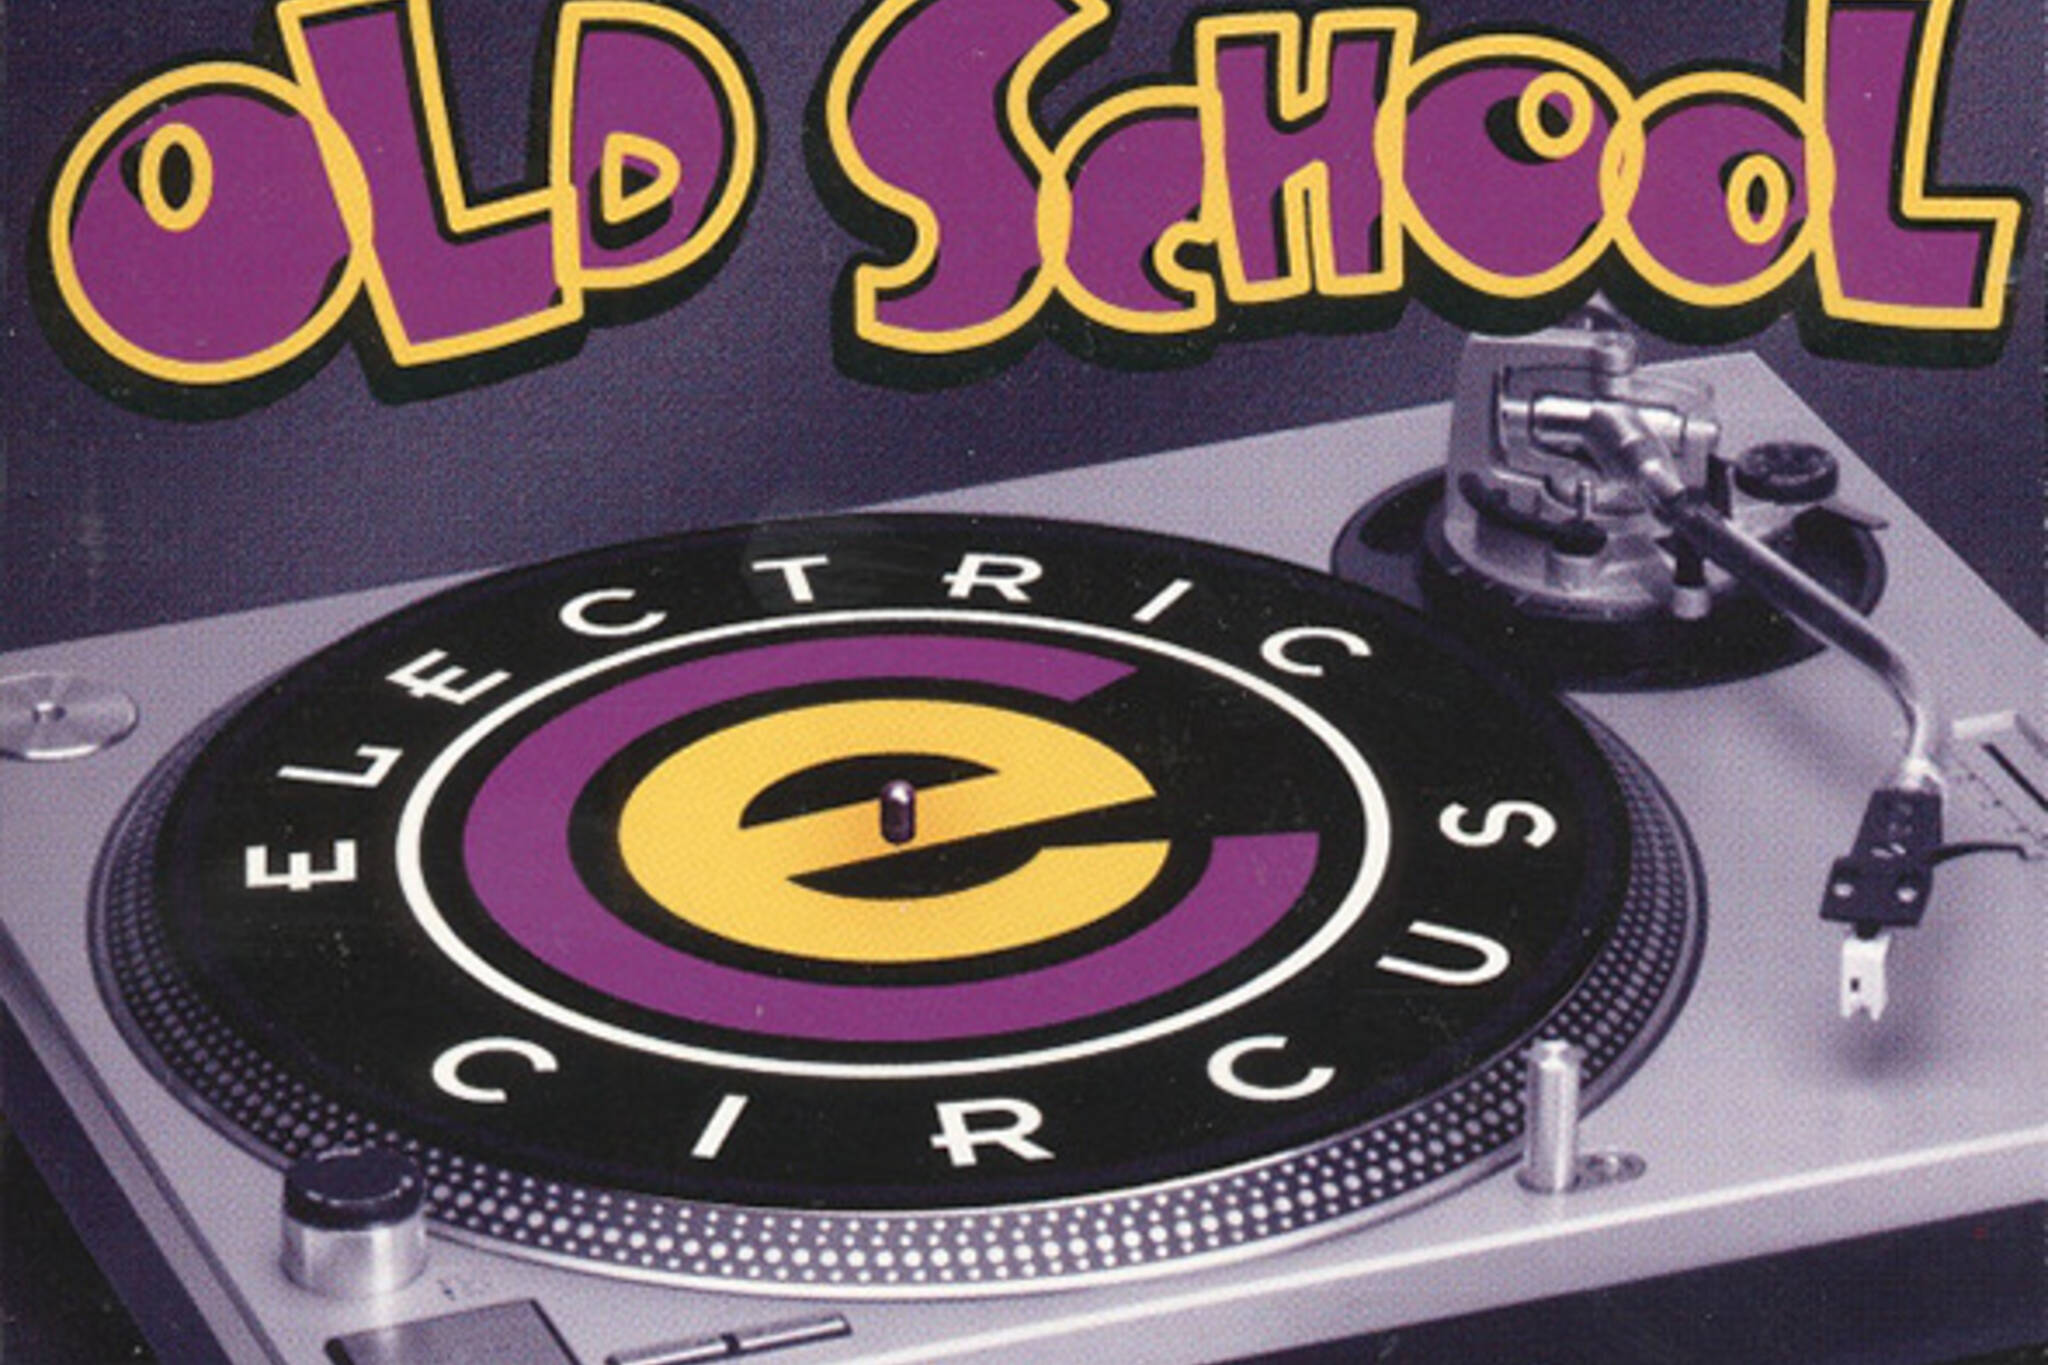 That time when Electric Circus was Toronto's best party